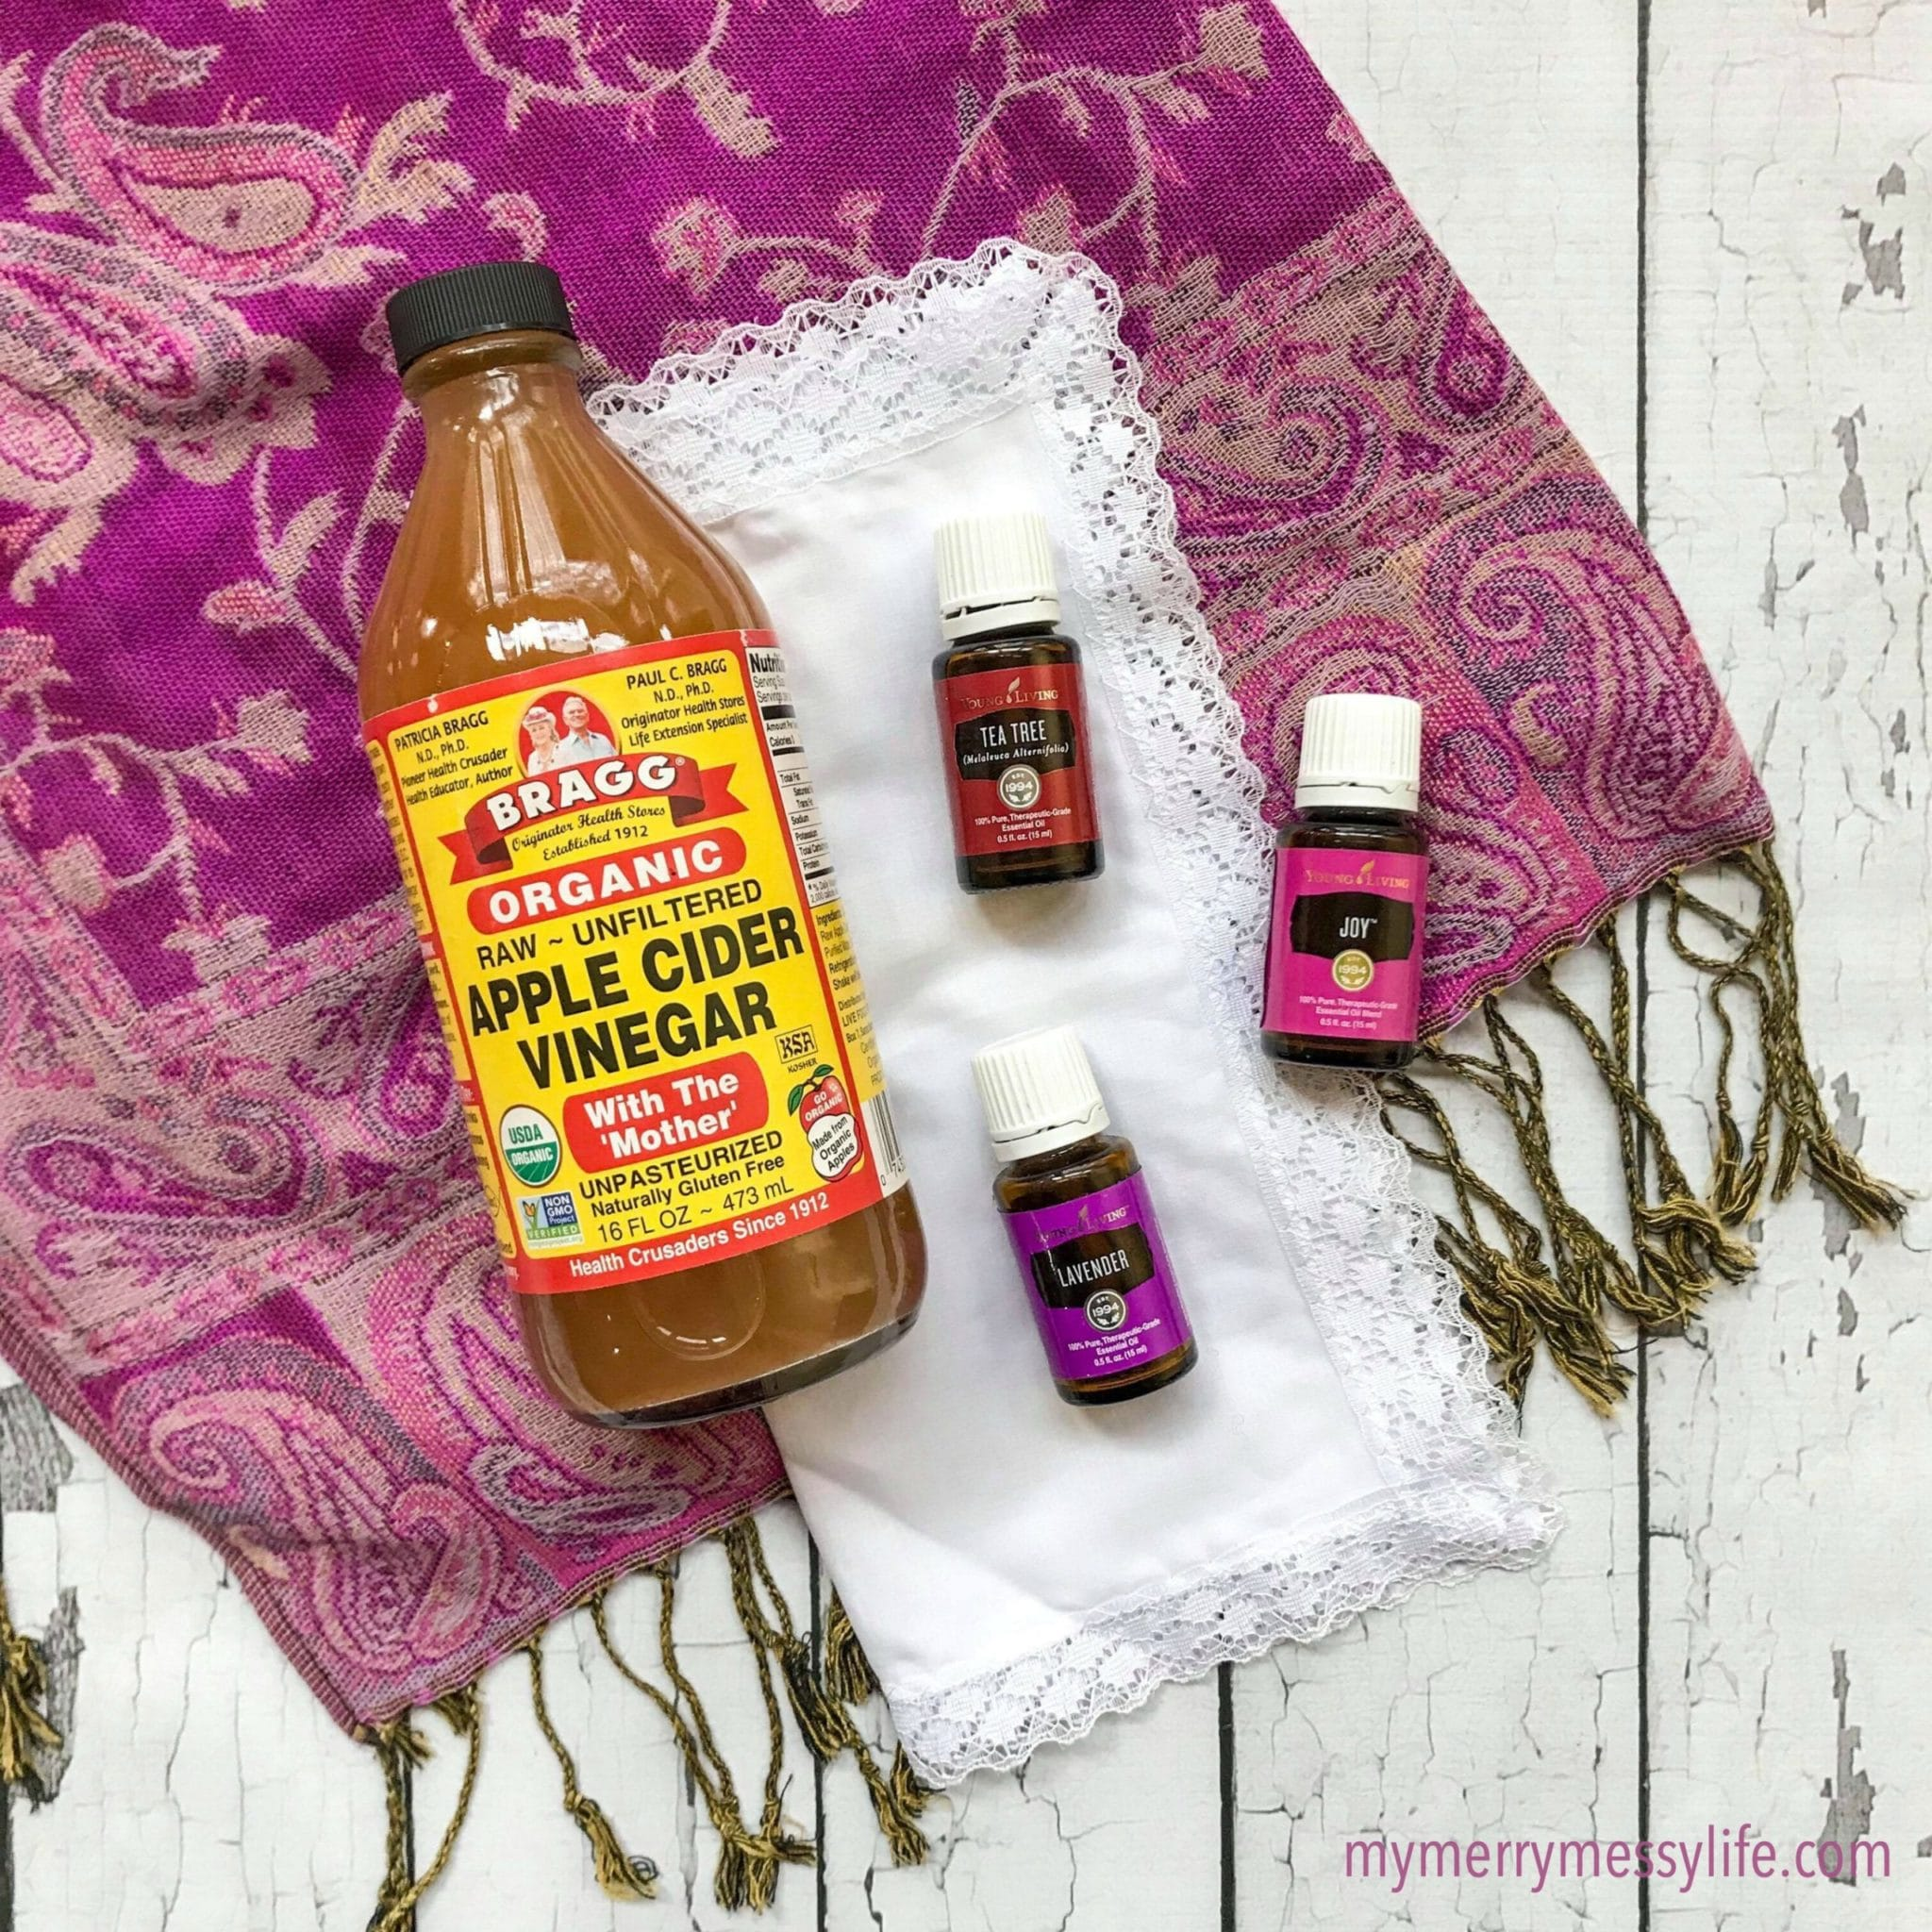 Apple Cider Vinegar and Essential Oils as a Hair Tonic and Clarifying Shampoo